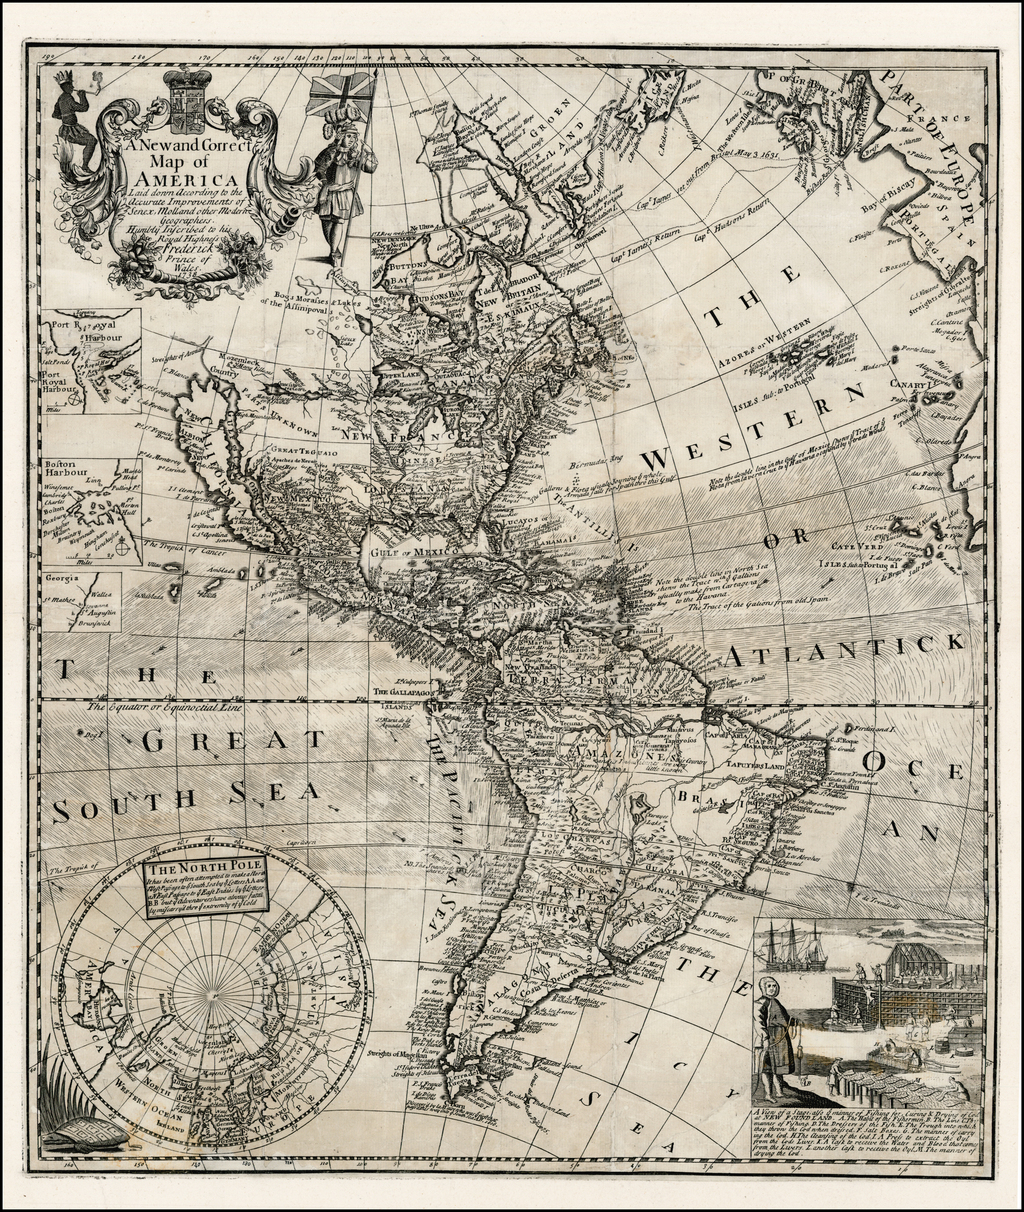 A New and Correct Map of America Laid down According to the Accurate Improvements of Senex, Moll and other Modern Geographers.  Humbly Inscribed to his Royal Higness Frederick Pirnce of Wales,  1738 By George Foster